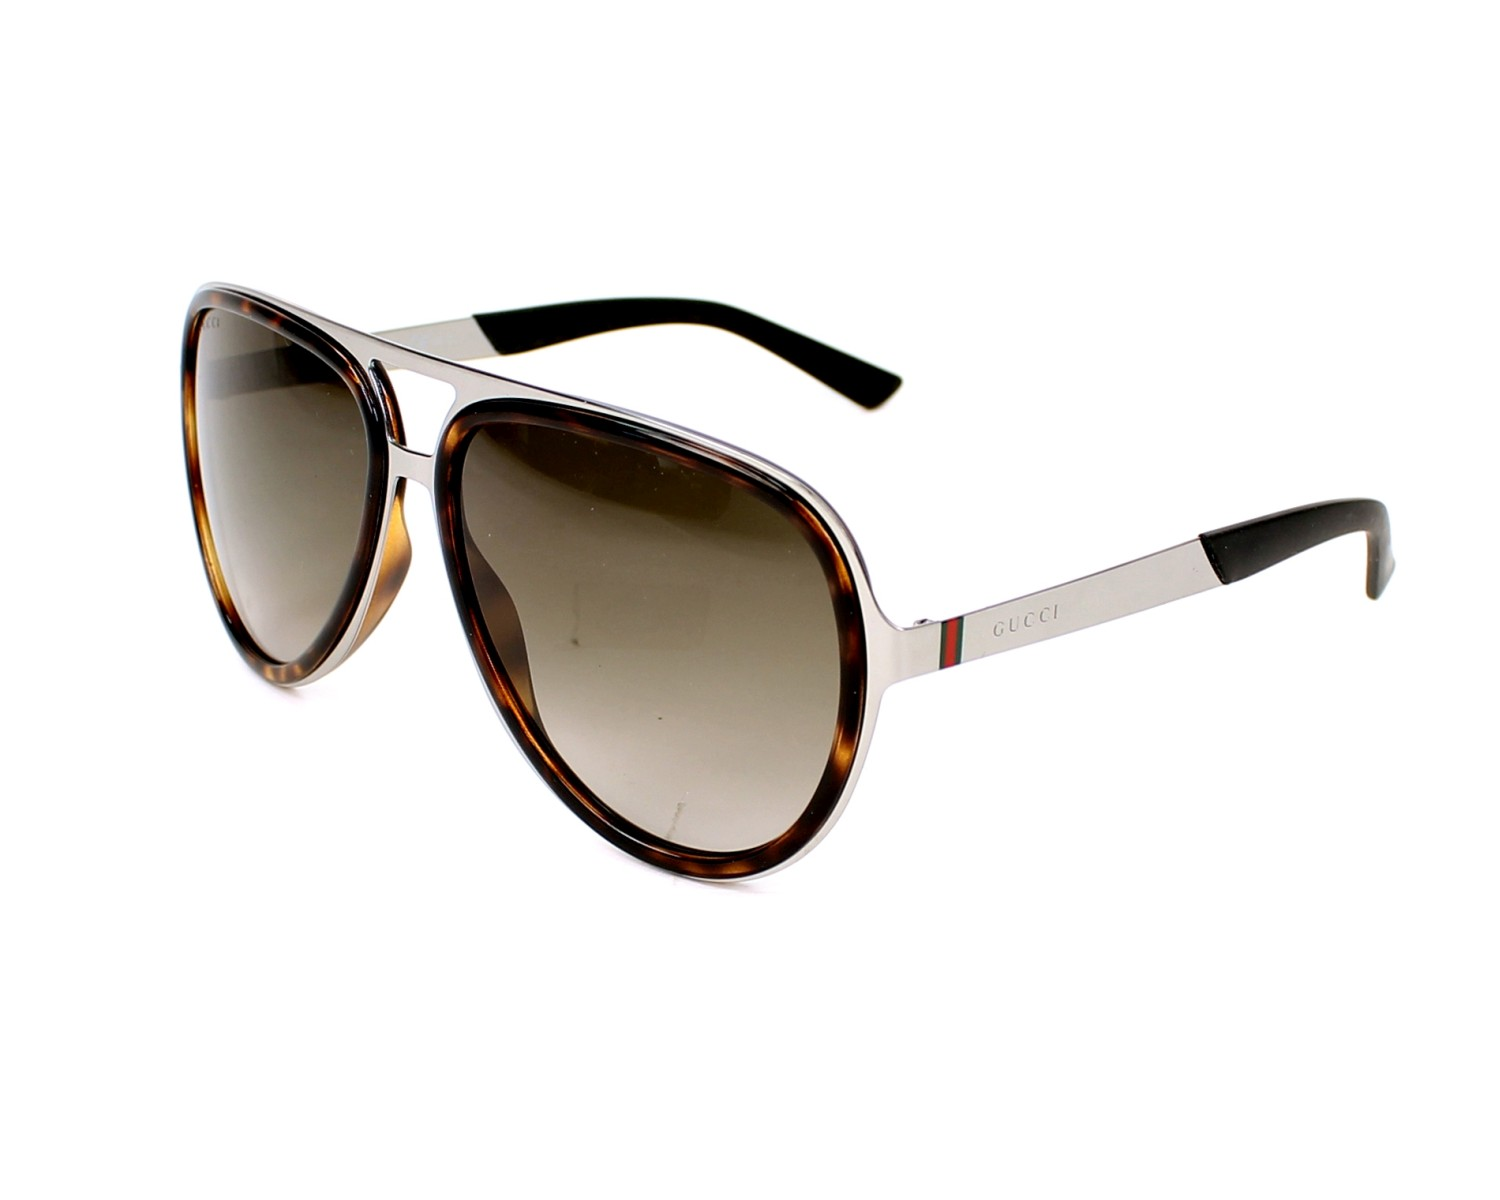 thumbnail Sunglasses Gucci GG-2274-S 6LB/HA - Gun Havana profile view